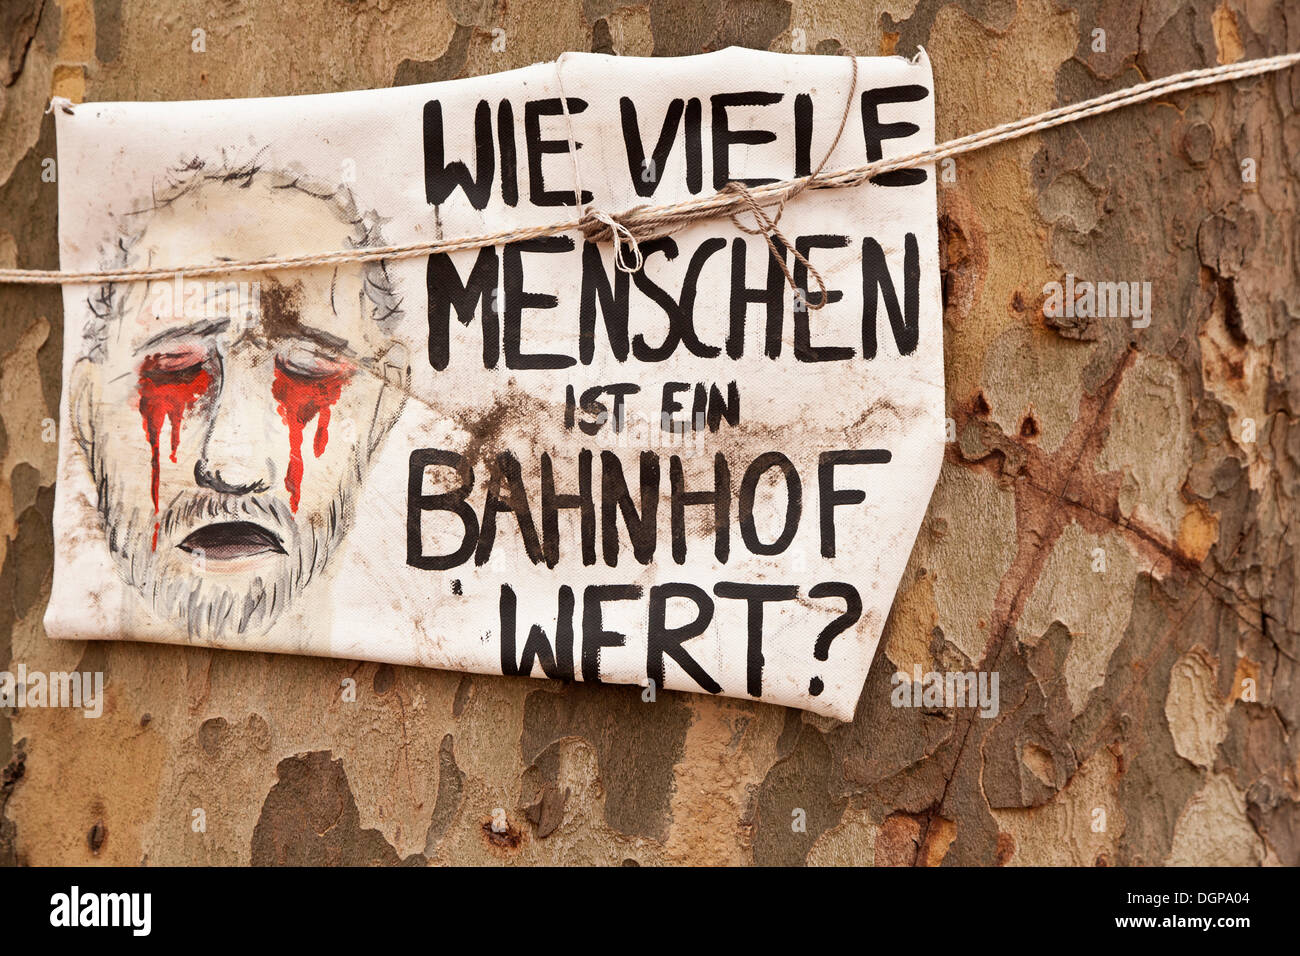 Protest poster 'Wie viele Menschen ist ein Bahnhof wert?', German for 'a train station is worth how many people?' on an old tree - Stock Image